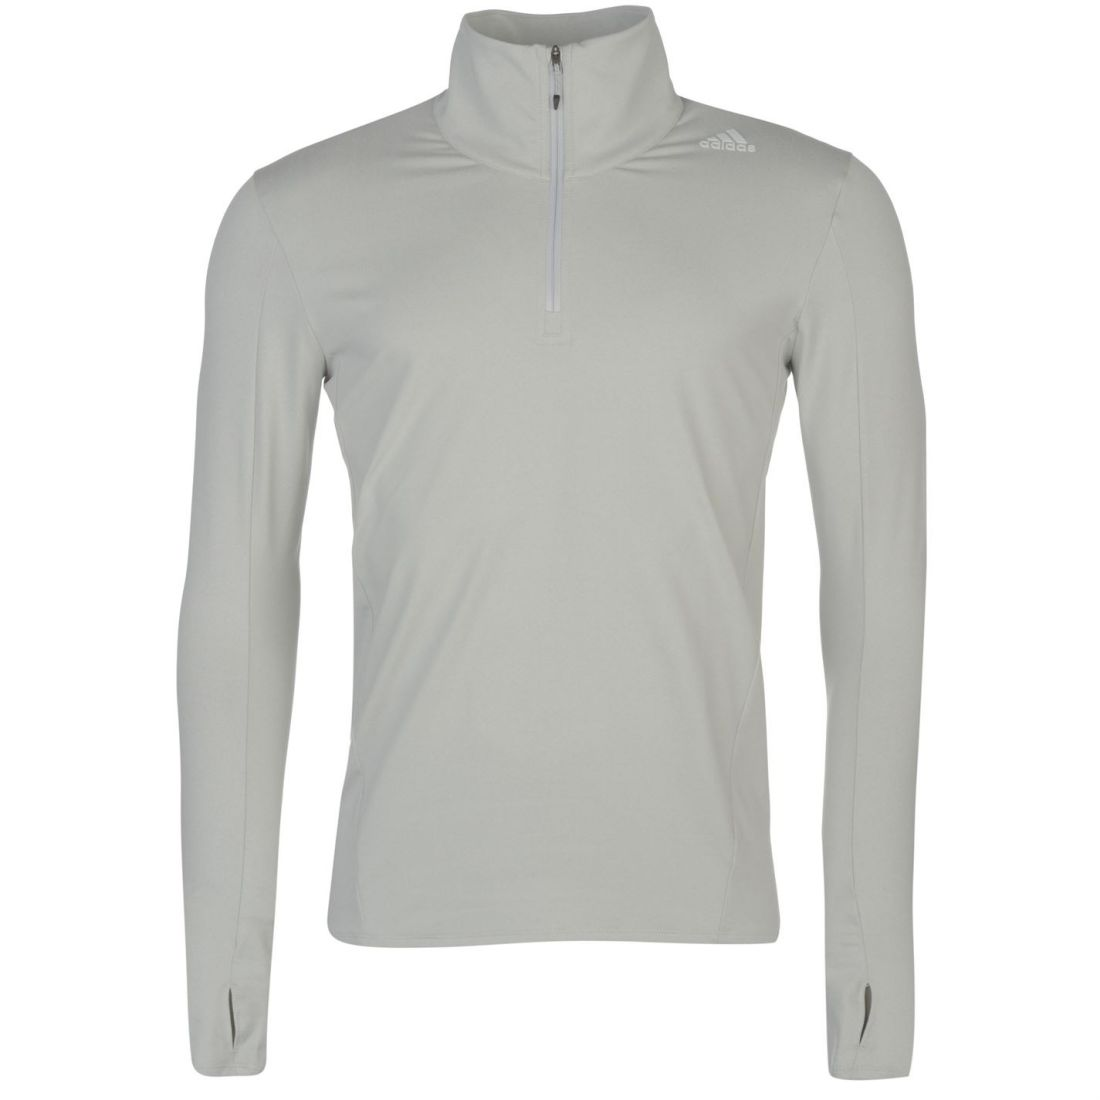 f499efe7 Details about adidas SuperNova Half Zip Running Jacket Mens Gents Full  Length Sleeve